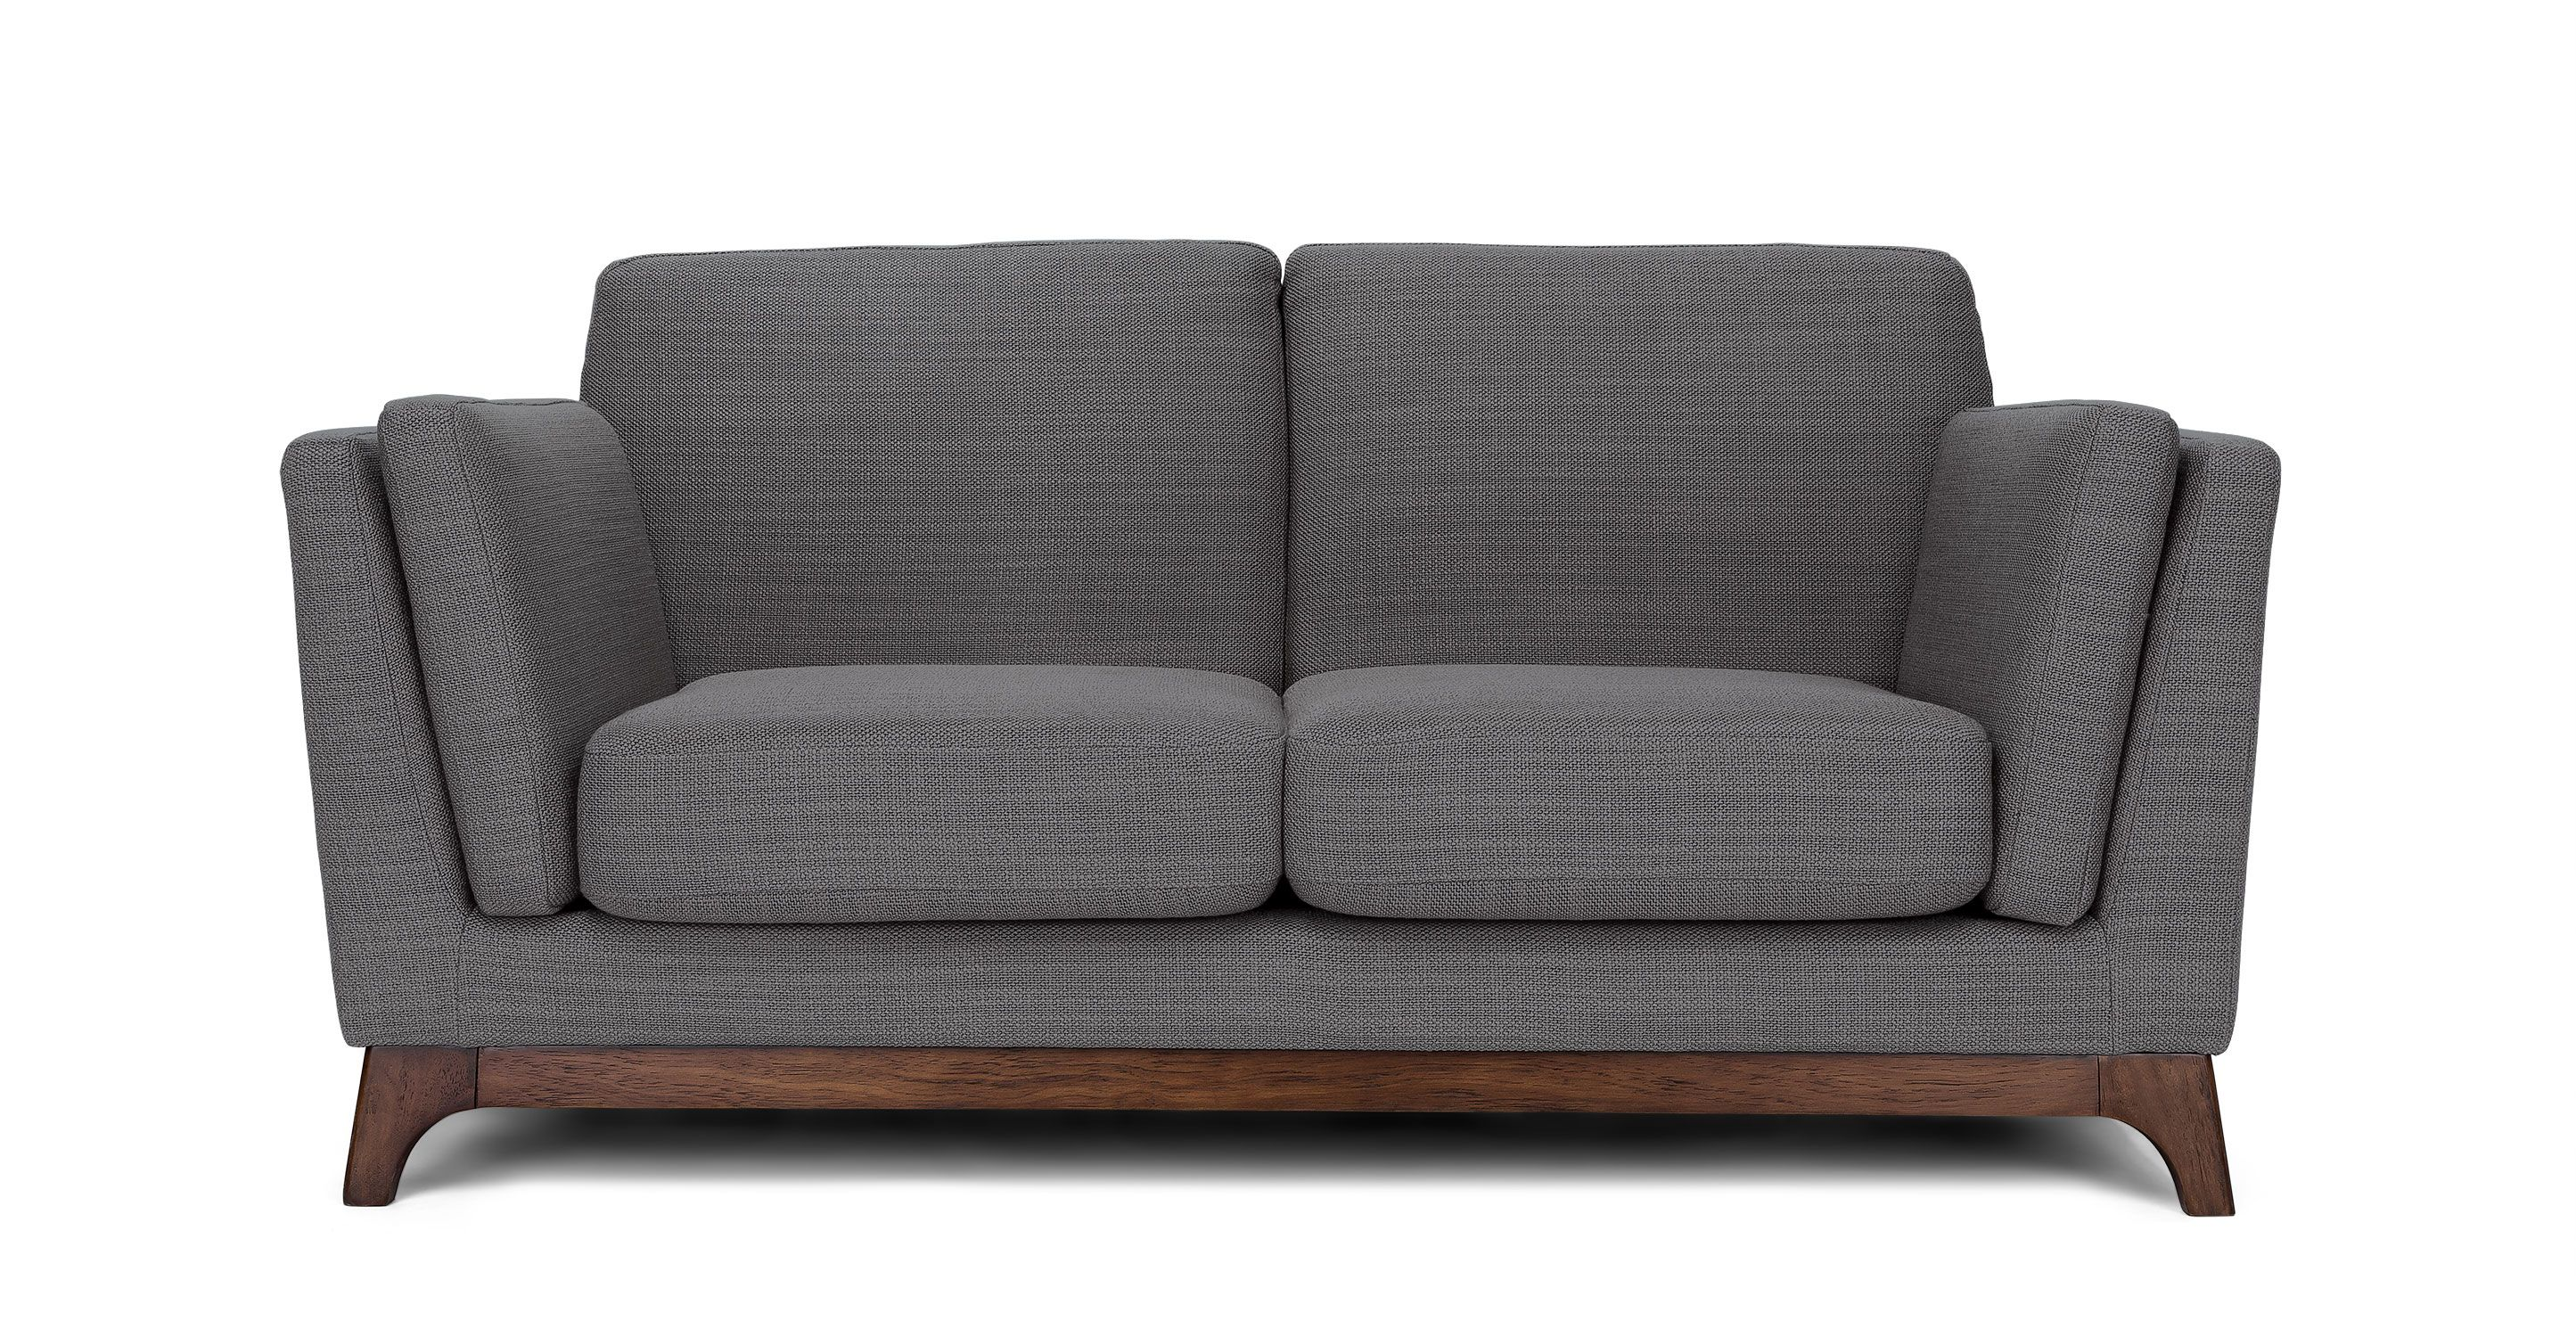 Gray Fabric Loveseat - Solid Wood Legs | Article Ceni Modern ...